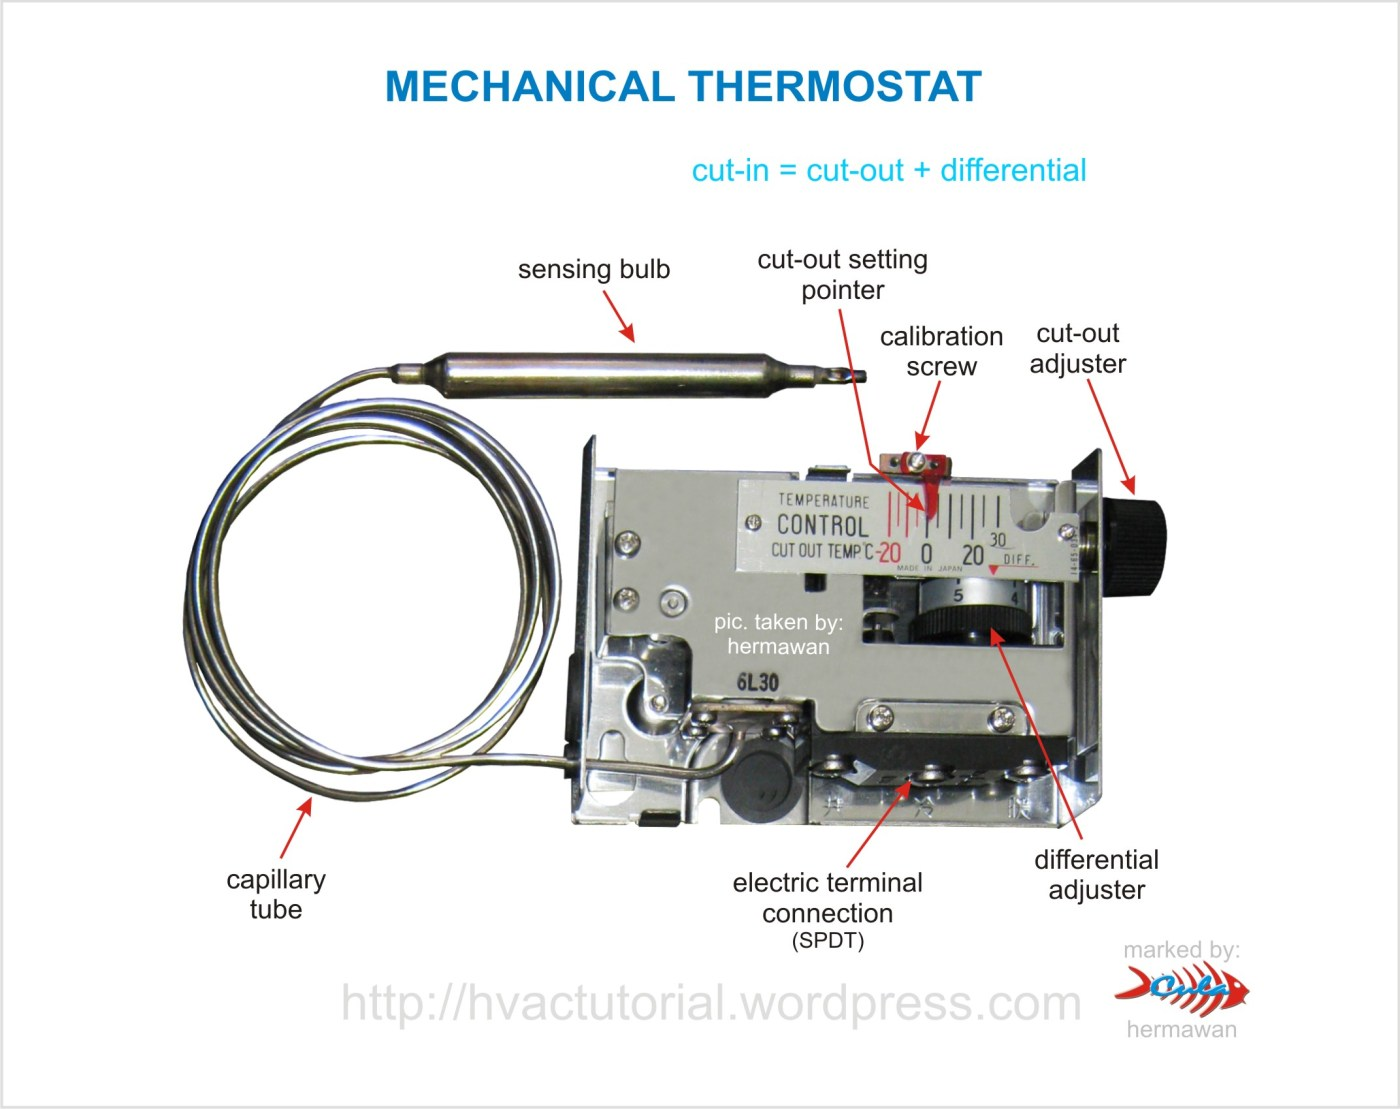 medium resolution of mechanical thermostat hermawan s blog refrigeration and air conditioning systems